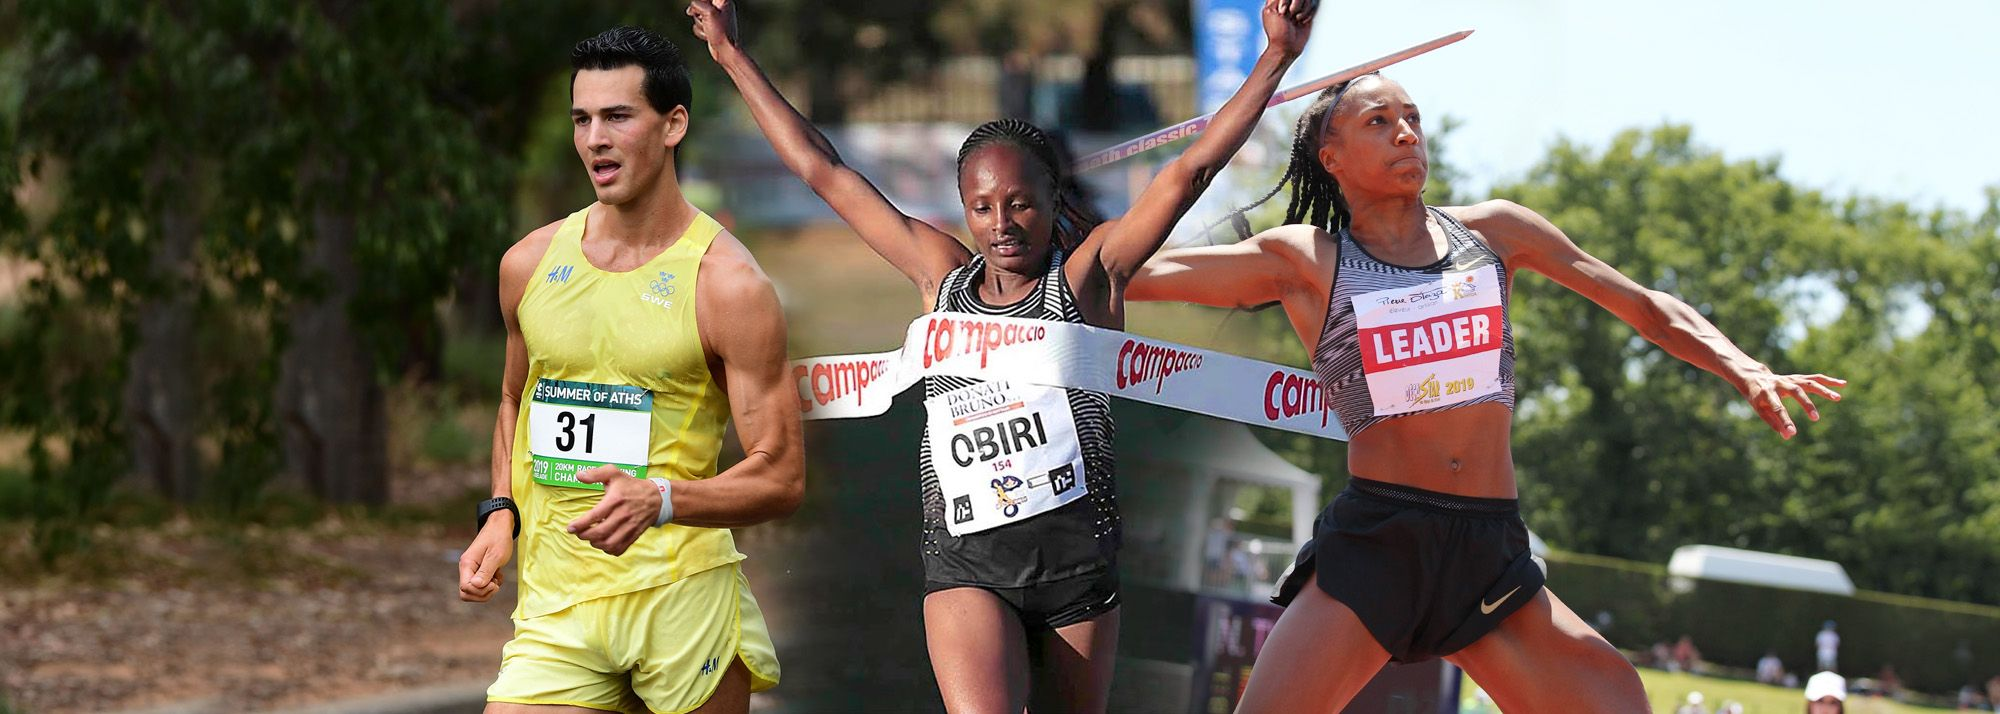 The one-day series of the world's best cross country, combined events and race walking meetings will all move to a three-tier World Tour format from next month.